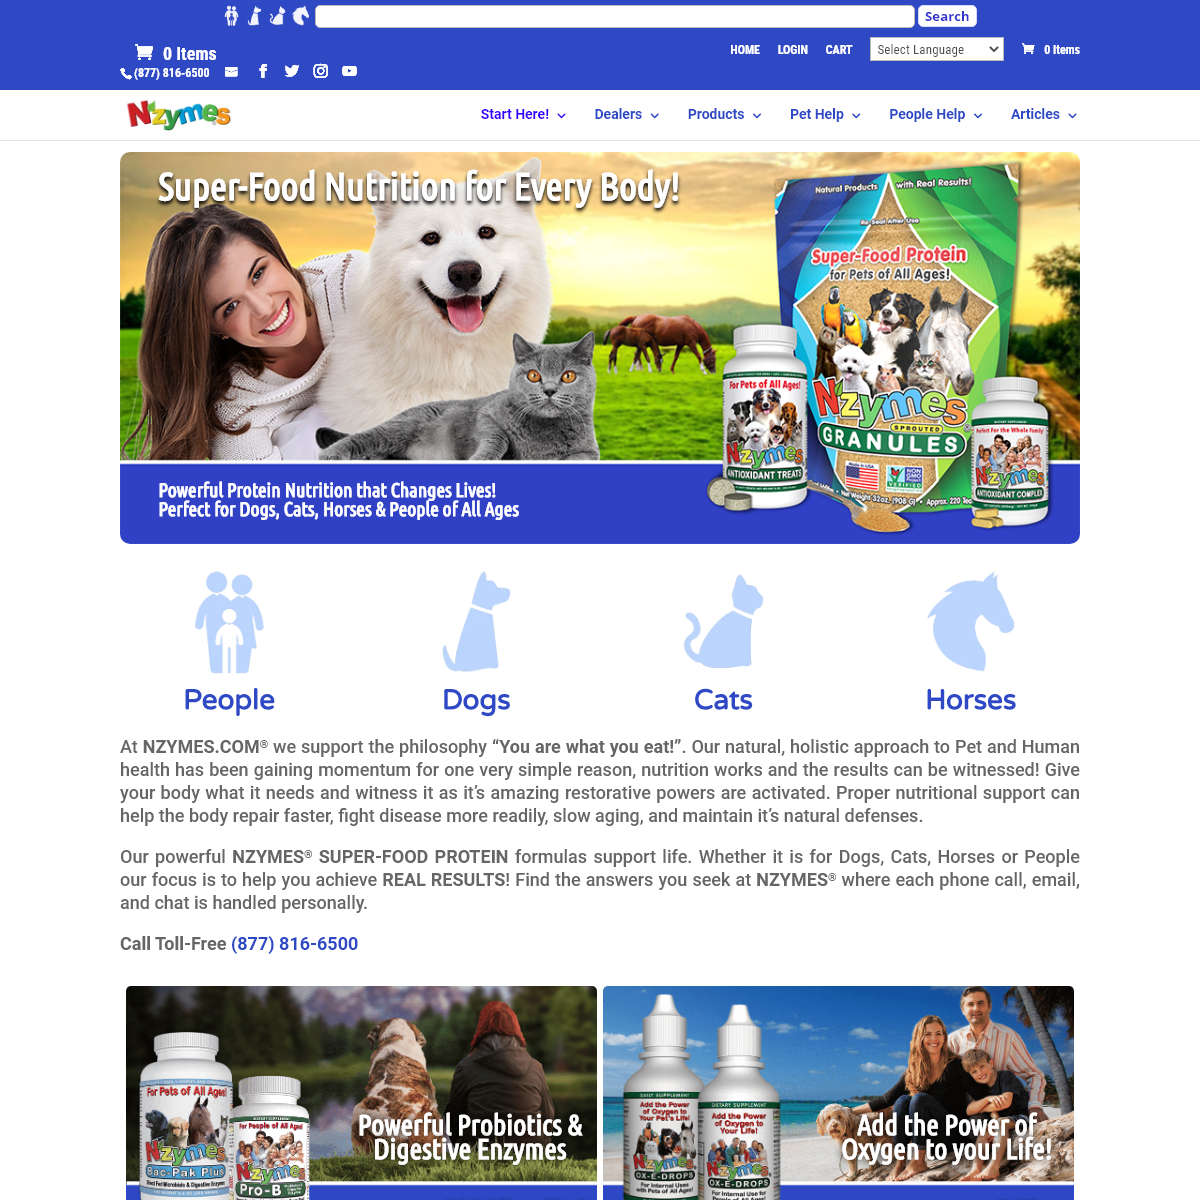 Super-Food Supplements for People and Pets of All Ages - NZYMES.COM